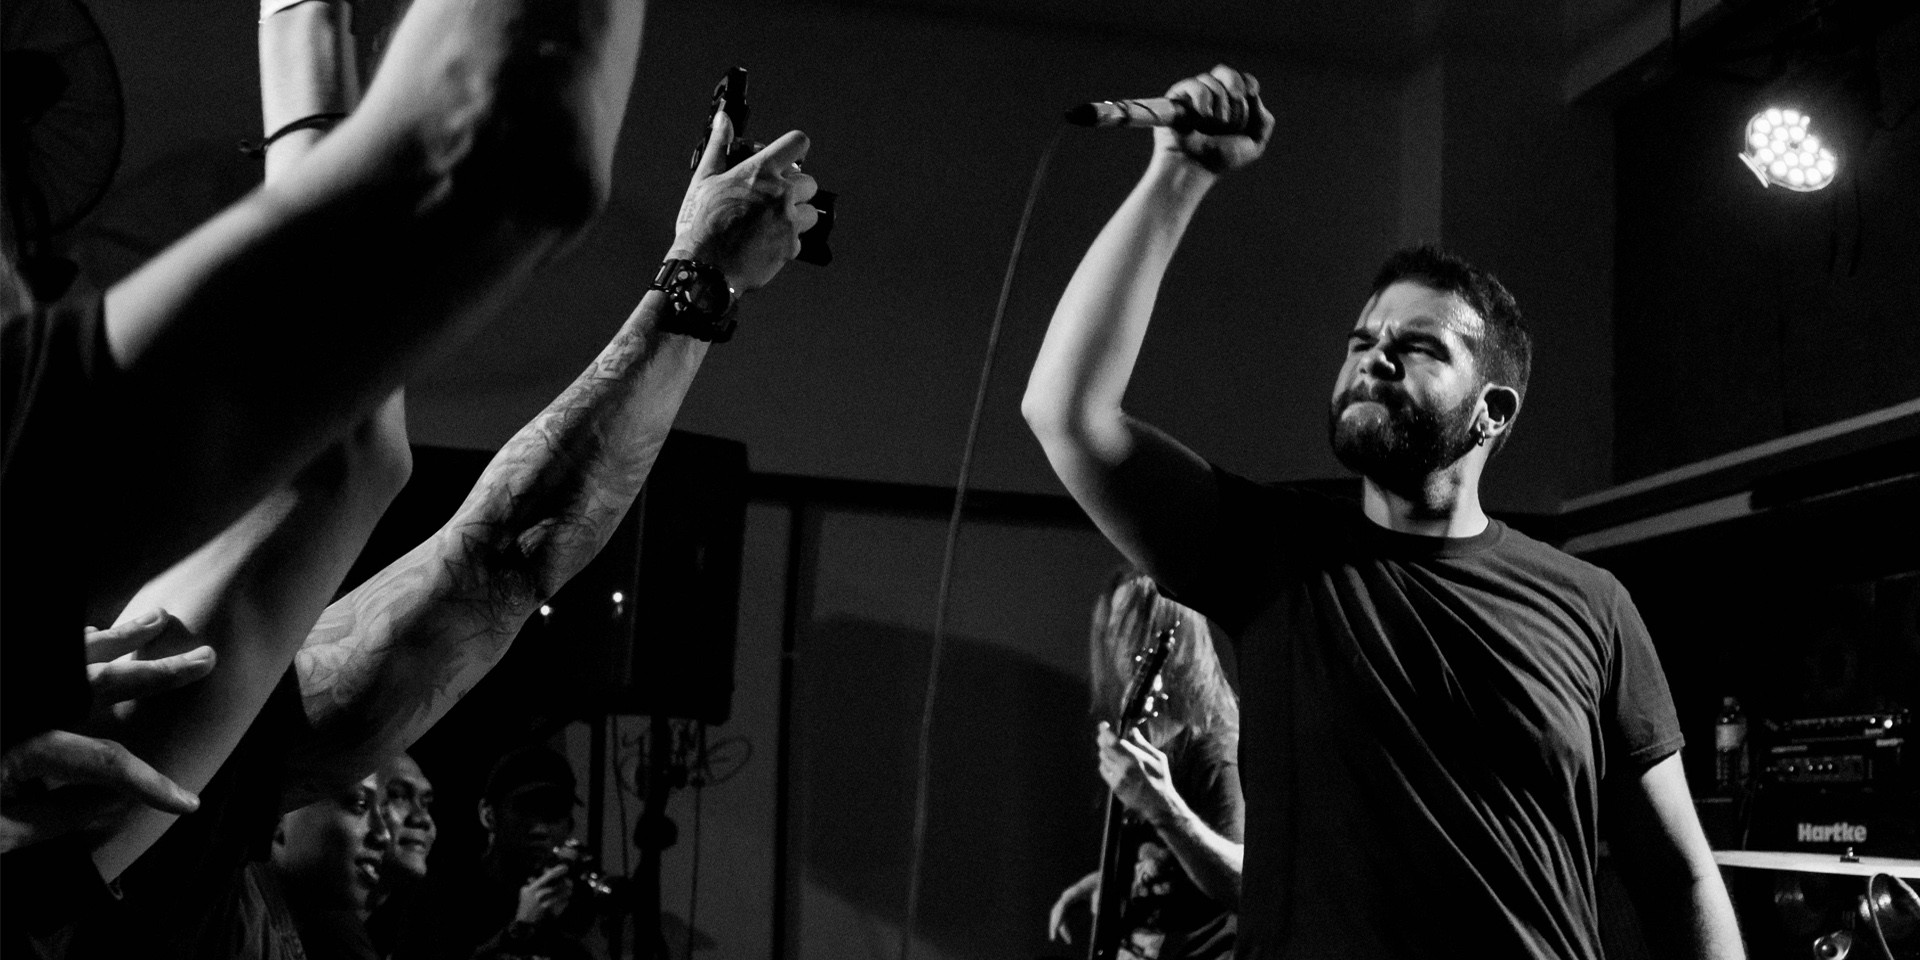 PHOTO GALLERY: Defeated Sanity's unmitigated death metal insanity